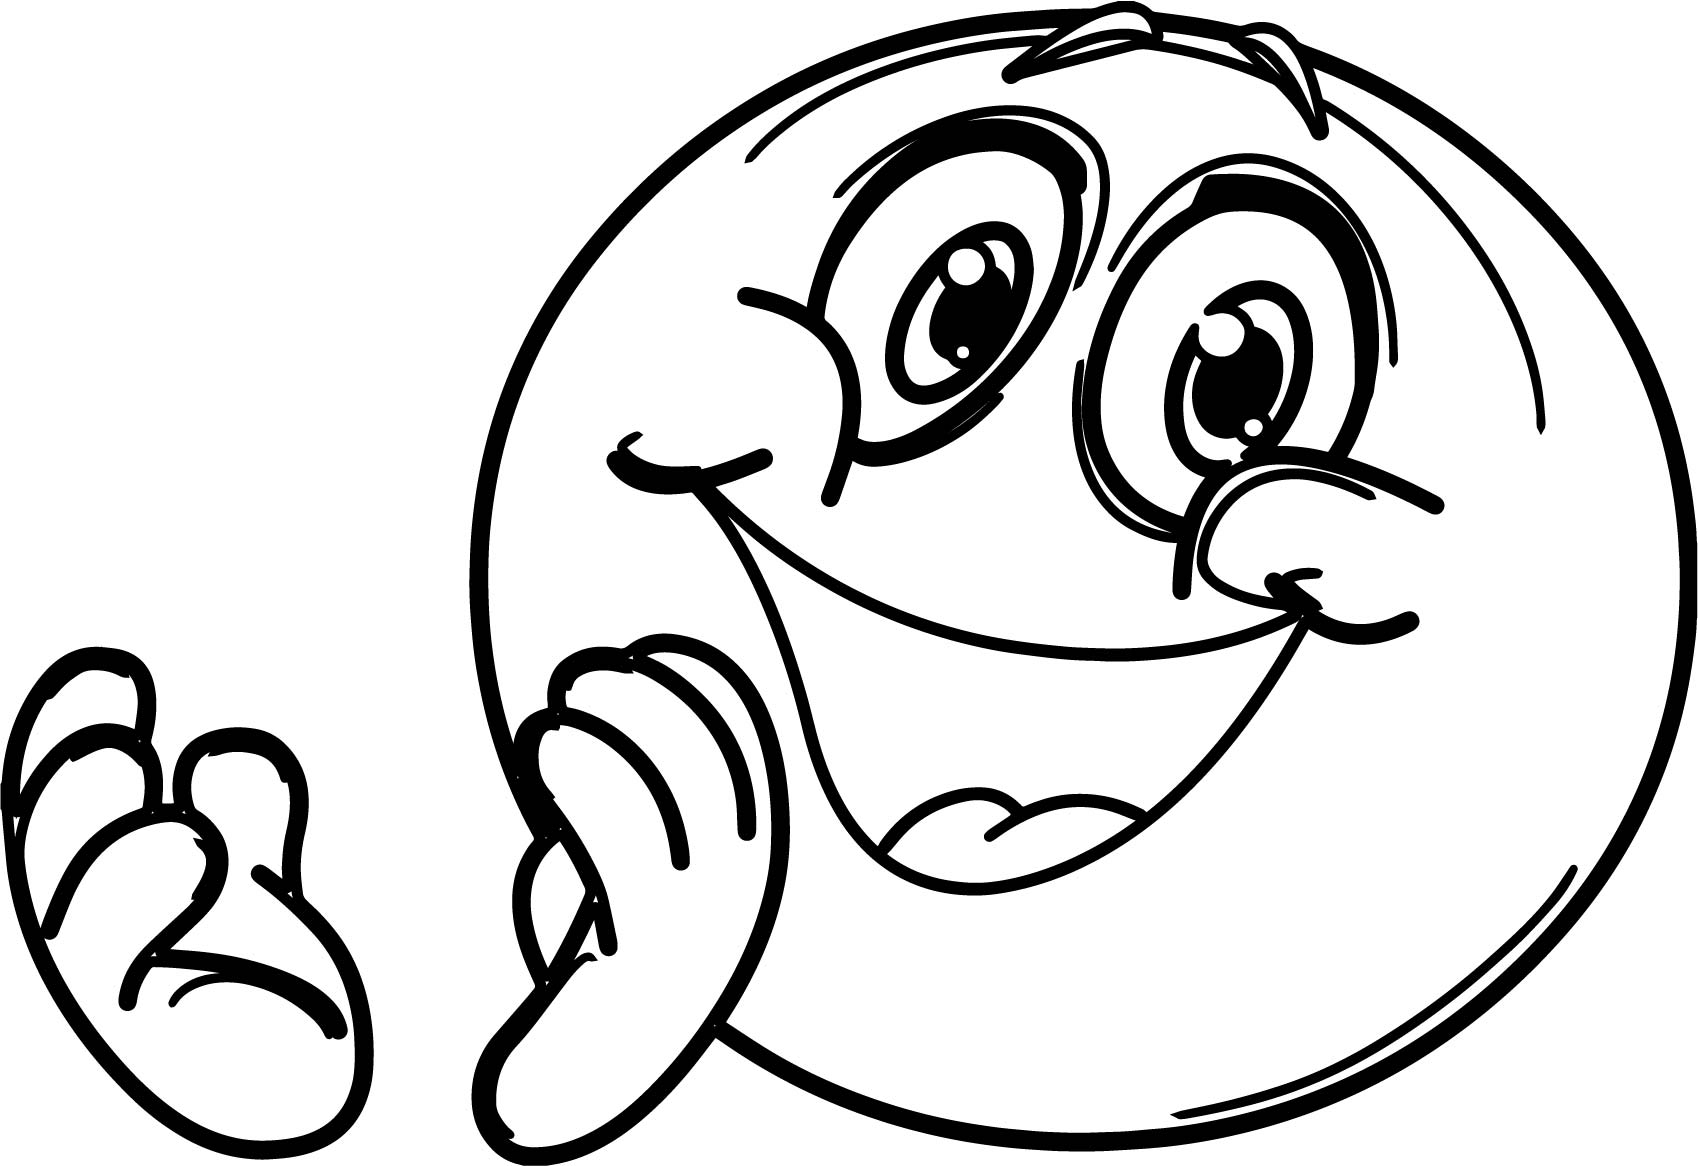 Clapping Outline Like Emoticon Free Download Computer Coloring Page